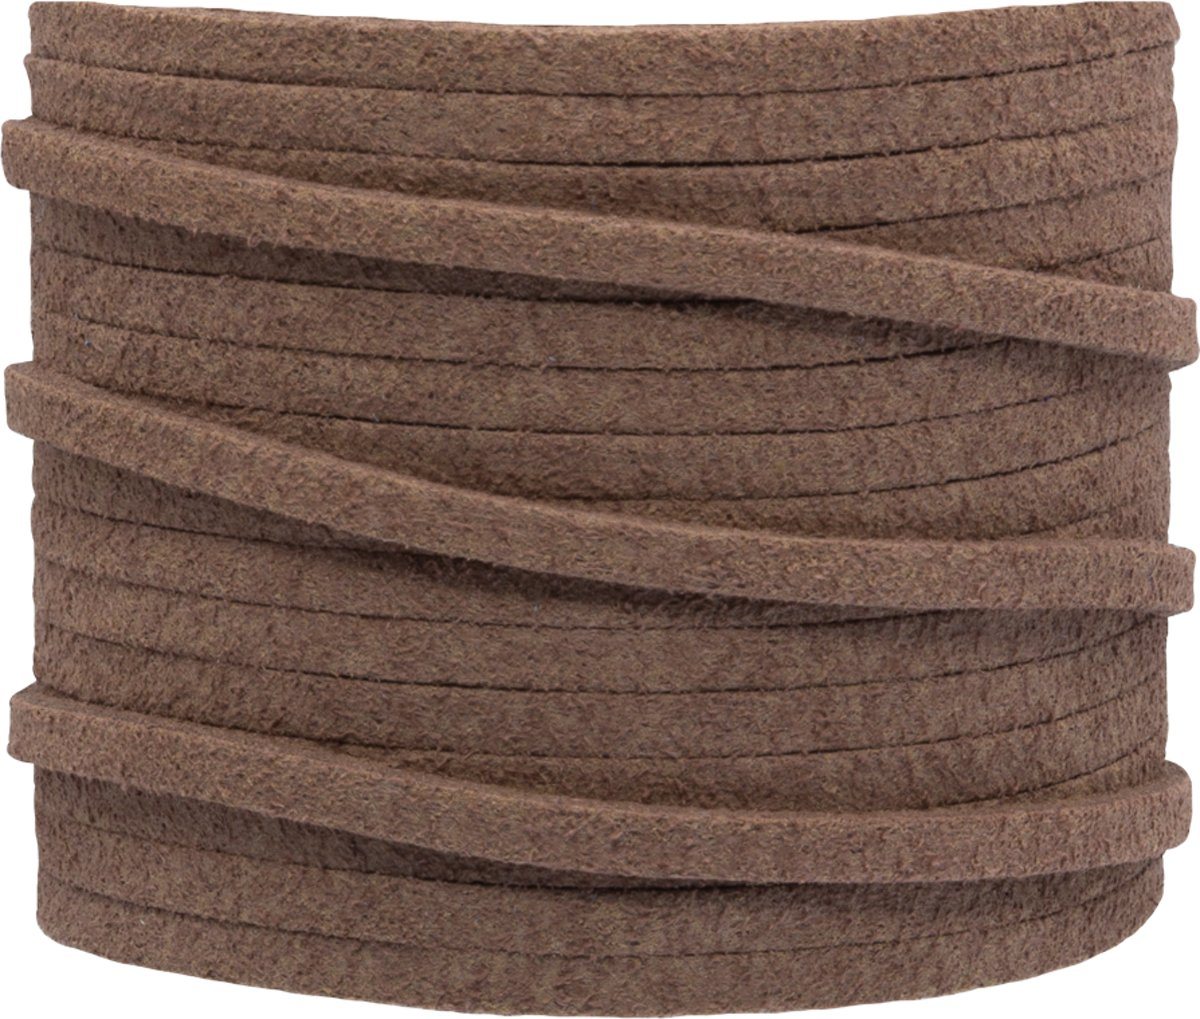 Faux Suede Veter (3 mm) Brown Pink (5 Meter)